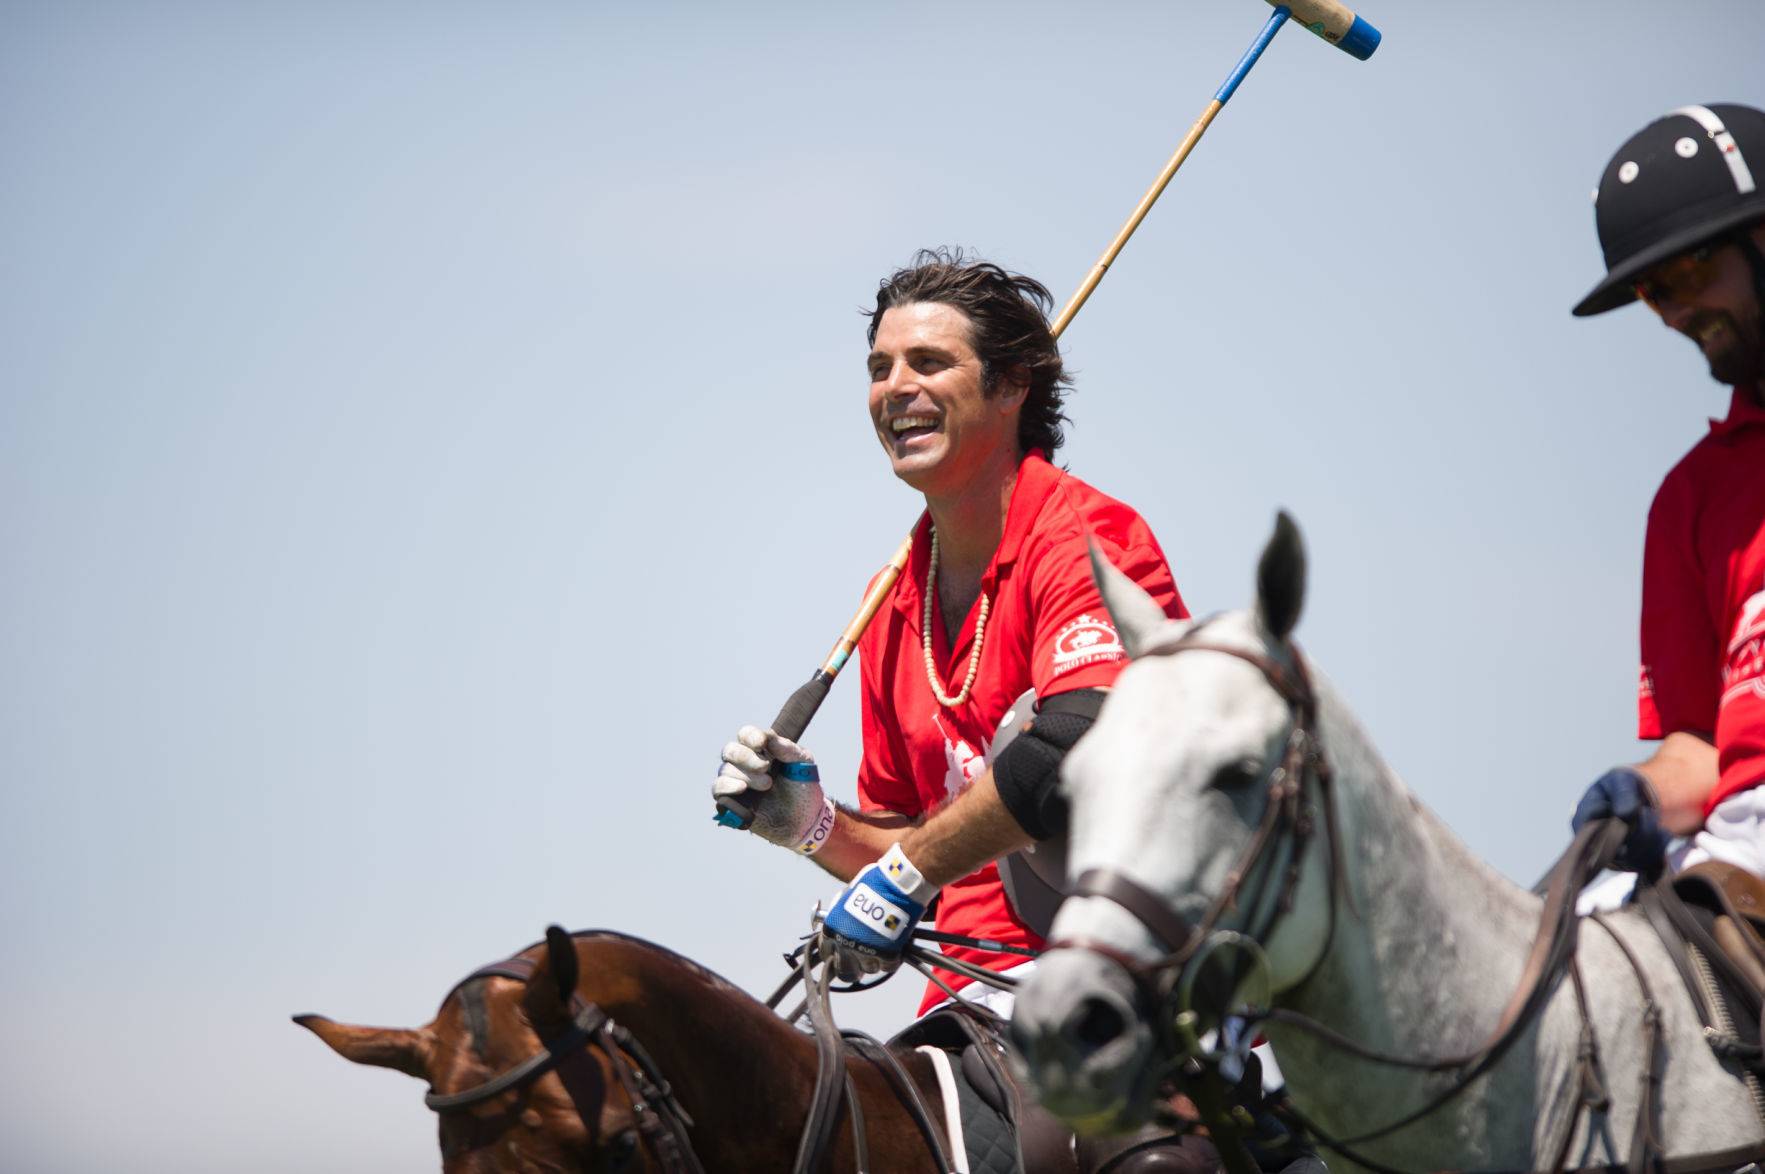 Watch Sue Sally Hale Legendary American Polo Pioneer, broke the gender barrier in Polo video